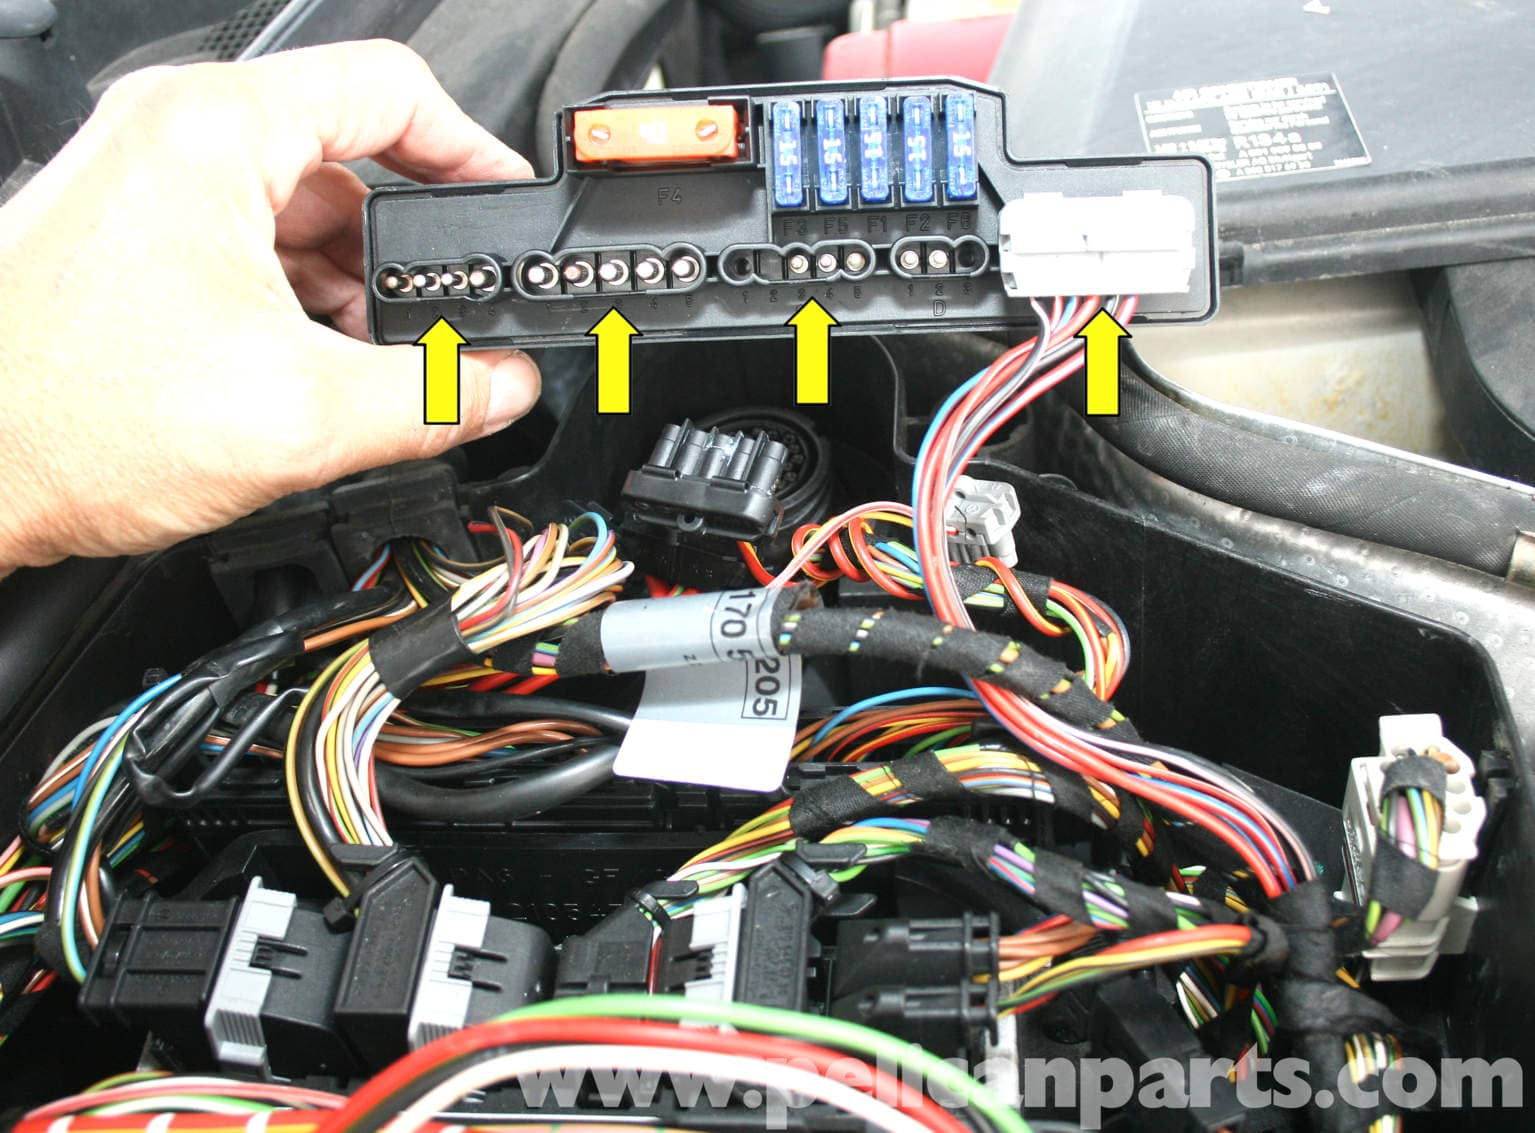 pic04 slk230 wiring diagram on slk230 download wirning diagrams mercedes slk 230 radio wiring diagram at nearapp.co